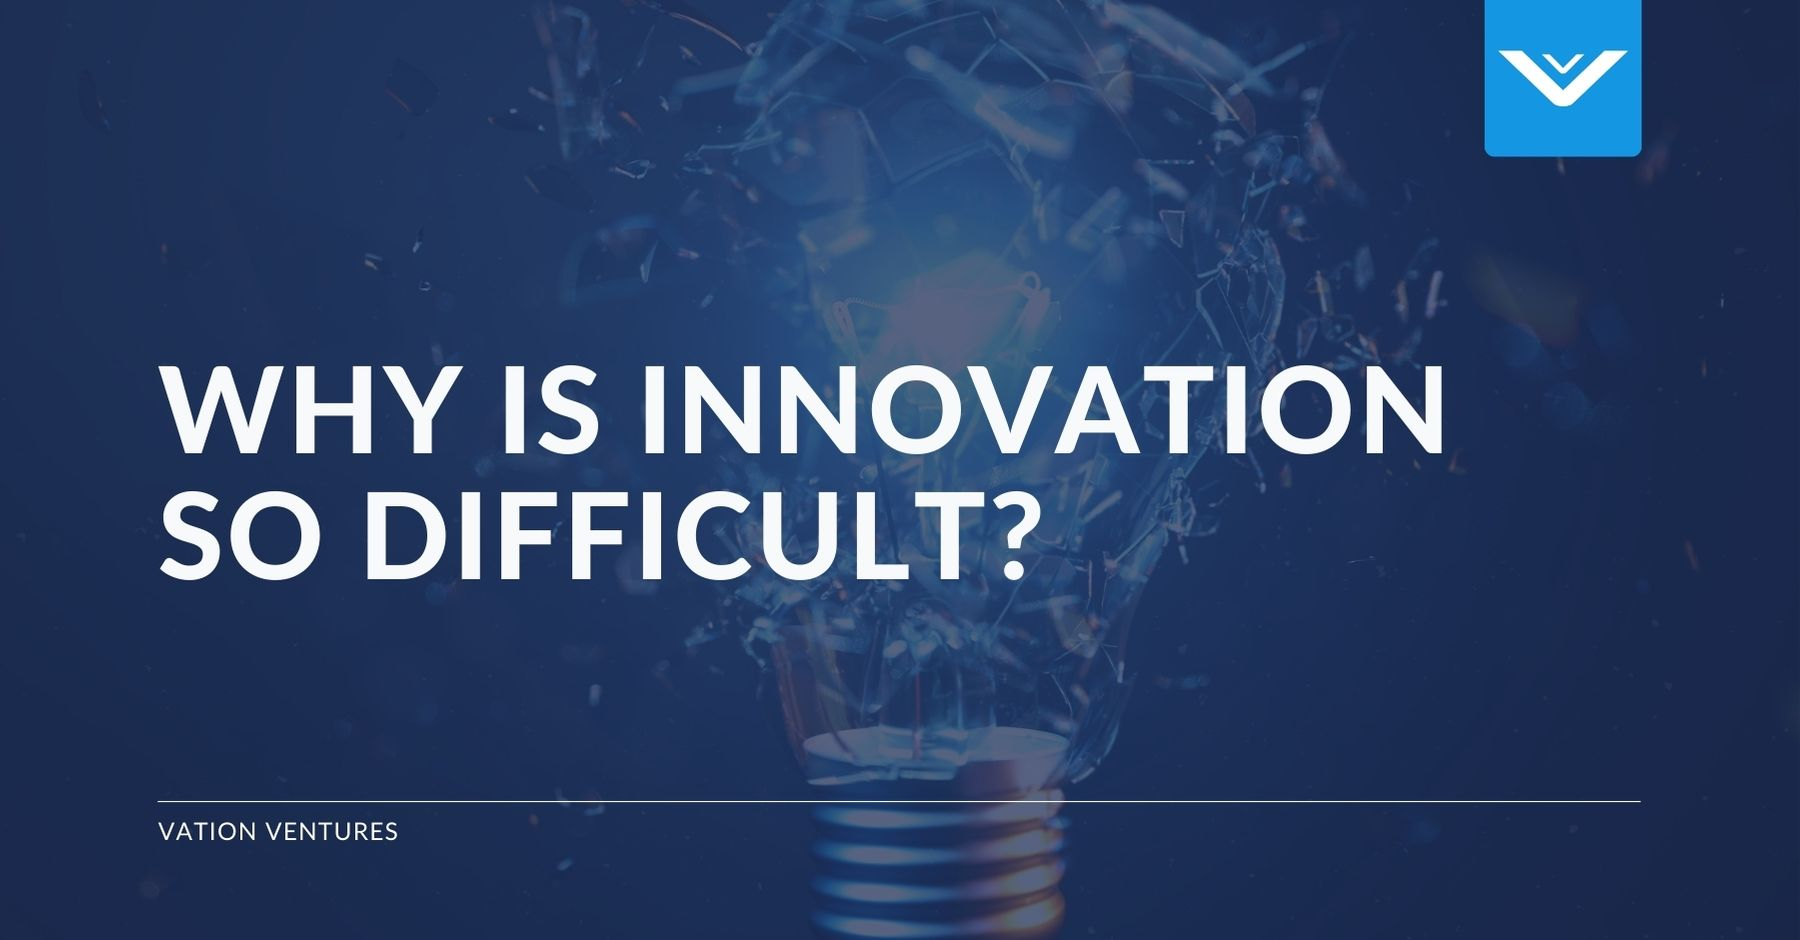 Why Is Innovation So Difficult?